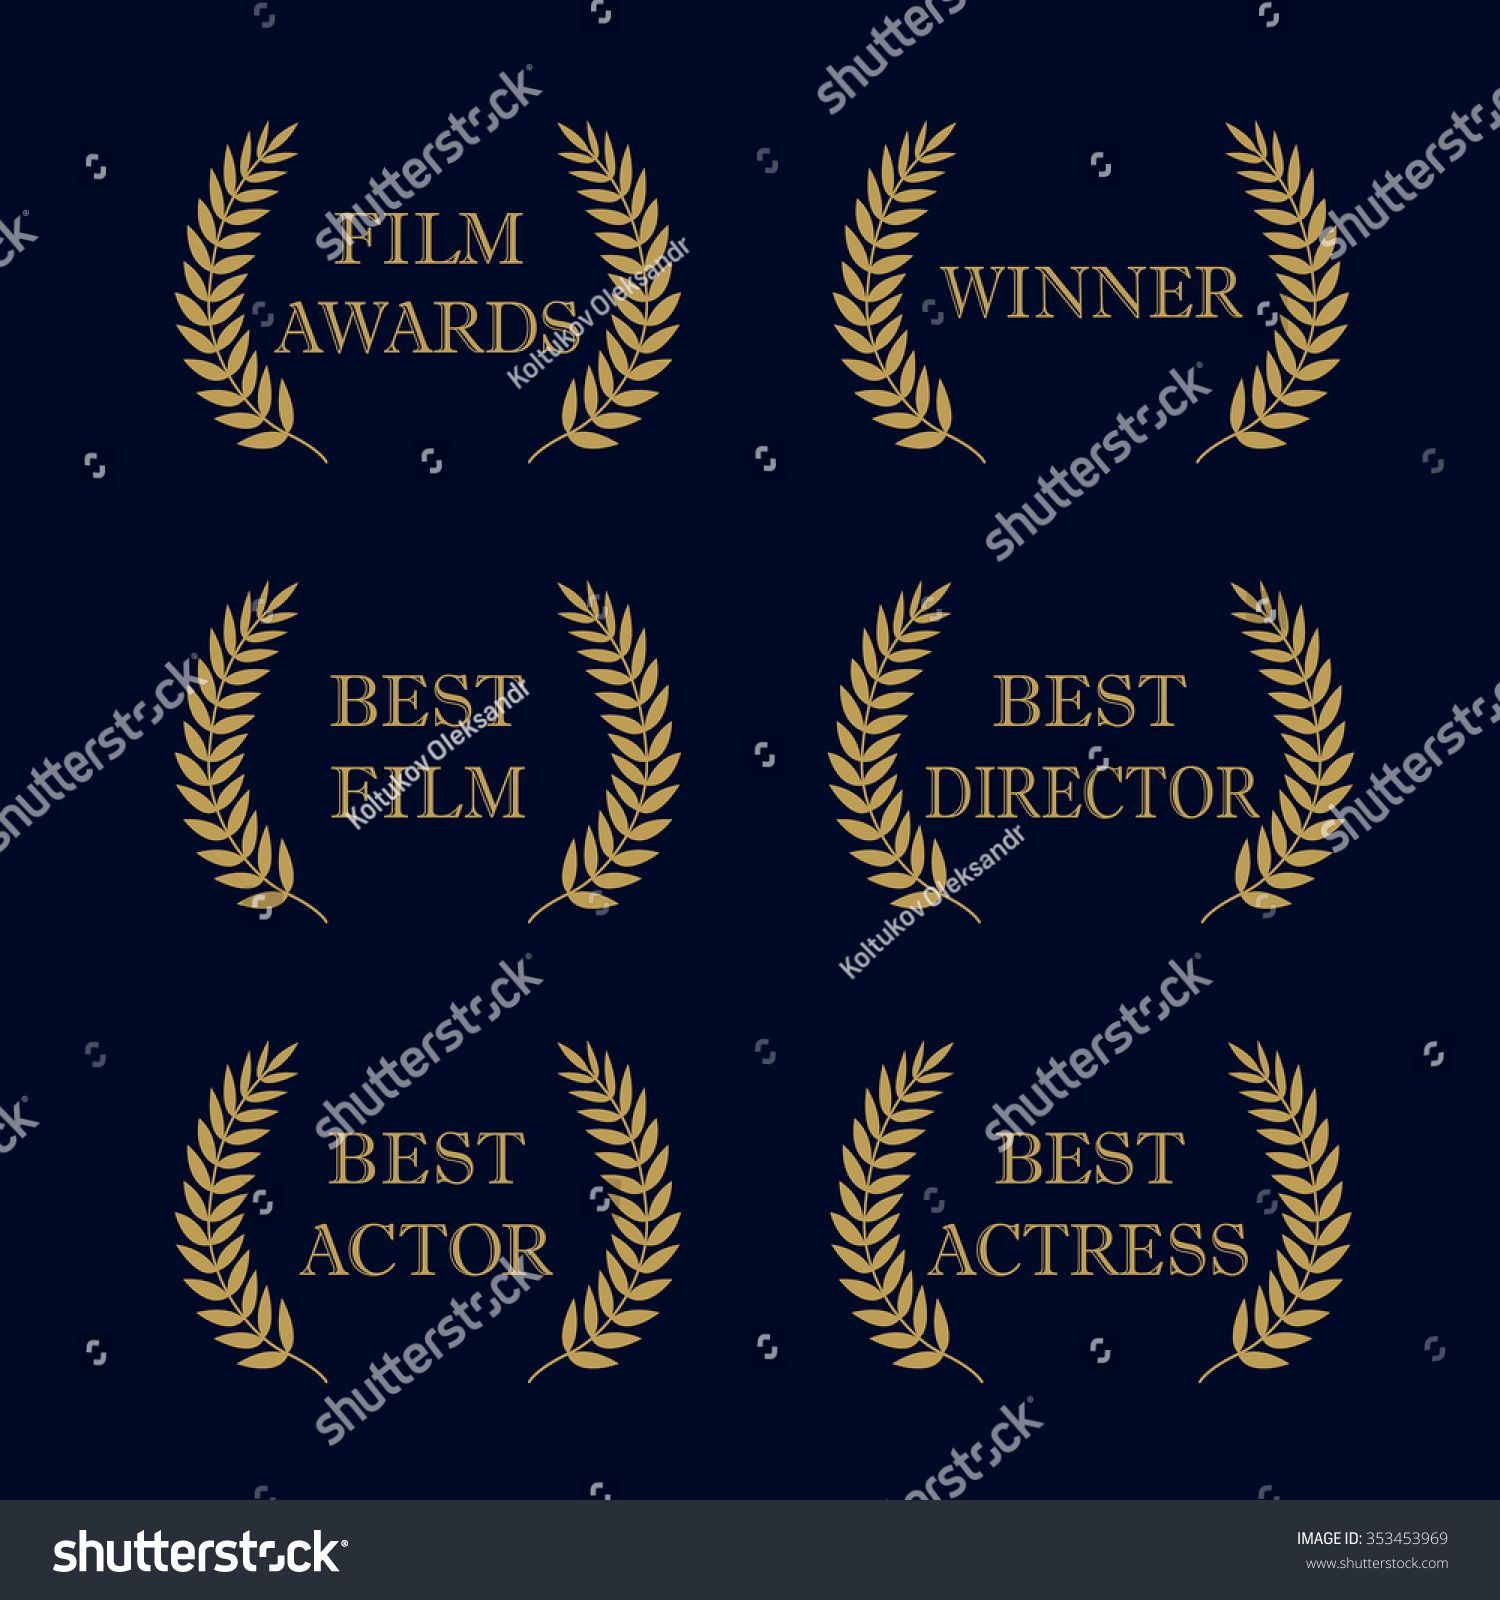 Film Awards And Best Nominee Gold Award Wreaths On Dark Background Film Awards Logo Best Award Vector Award Logo Winner Logo Fi Film Awards Film Logo Film